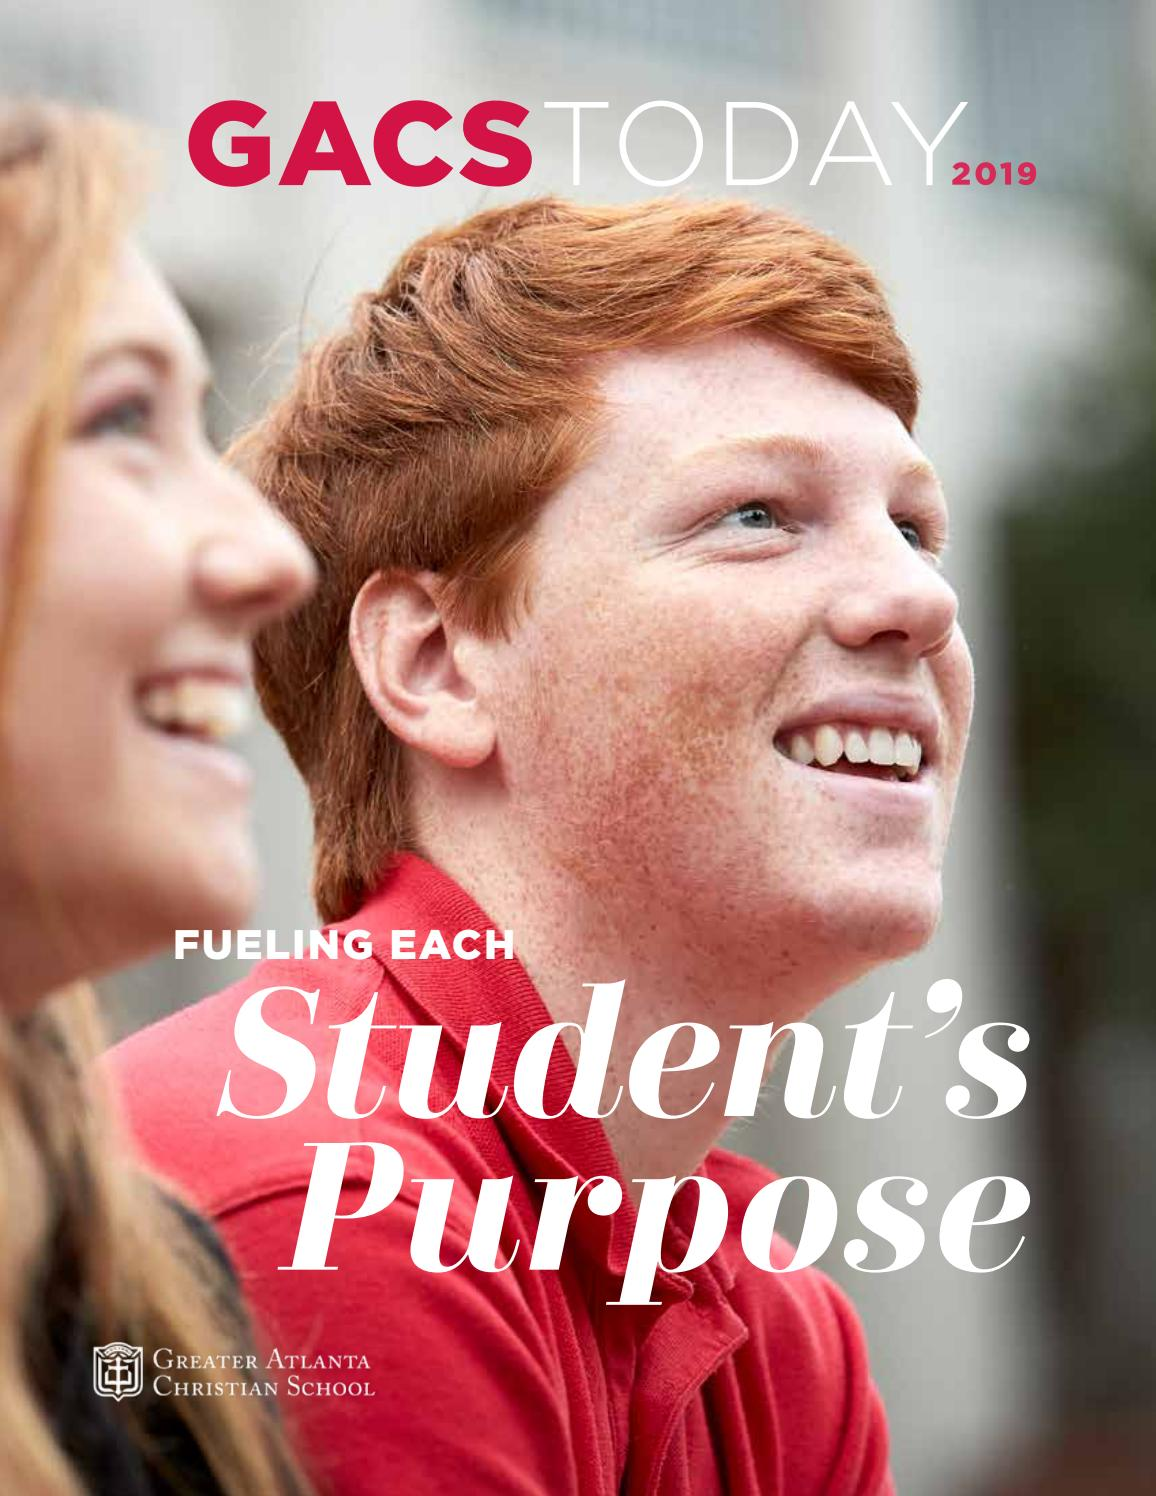 Gacs Today 2019 Magazine By Greater Atlanta Christian School Issuu The last book on the left signed edition. greater atlanta christian school